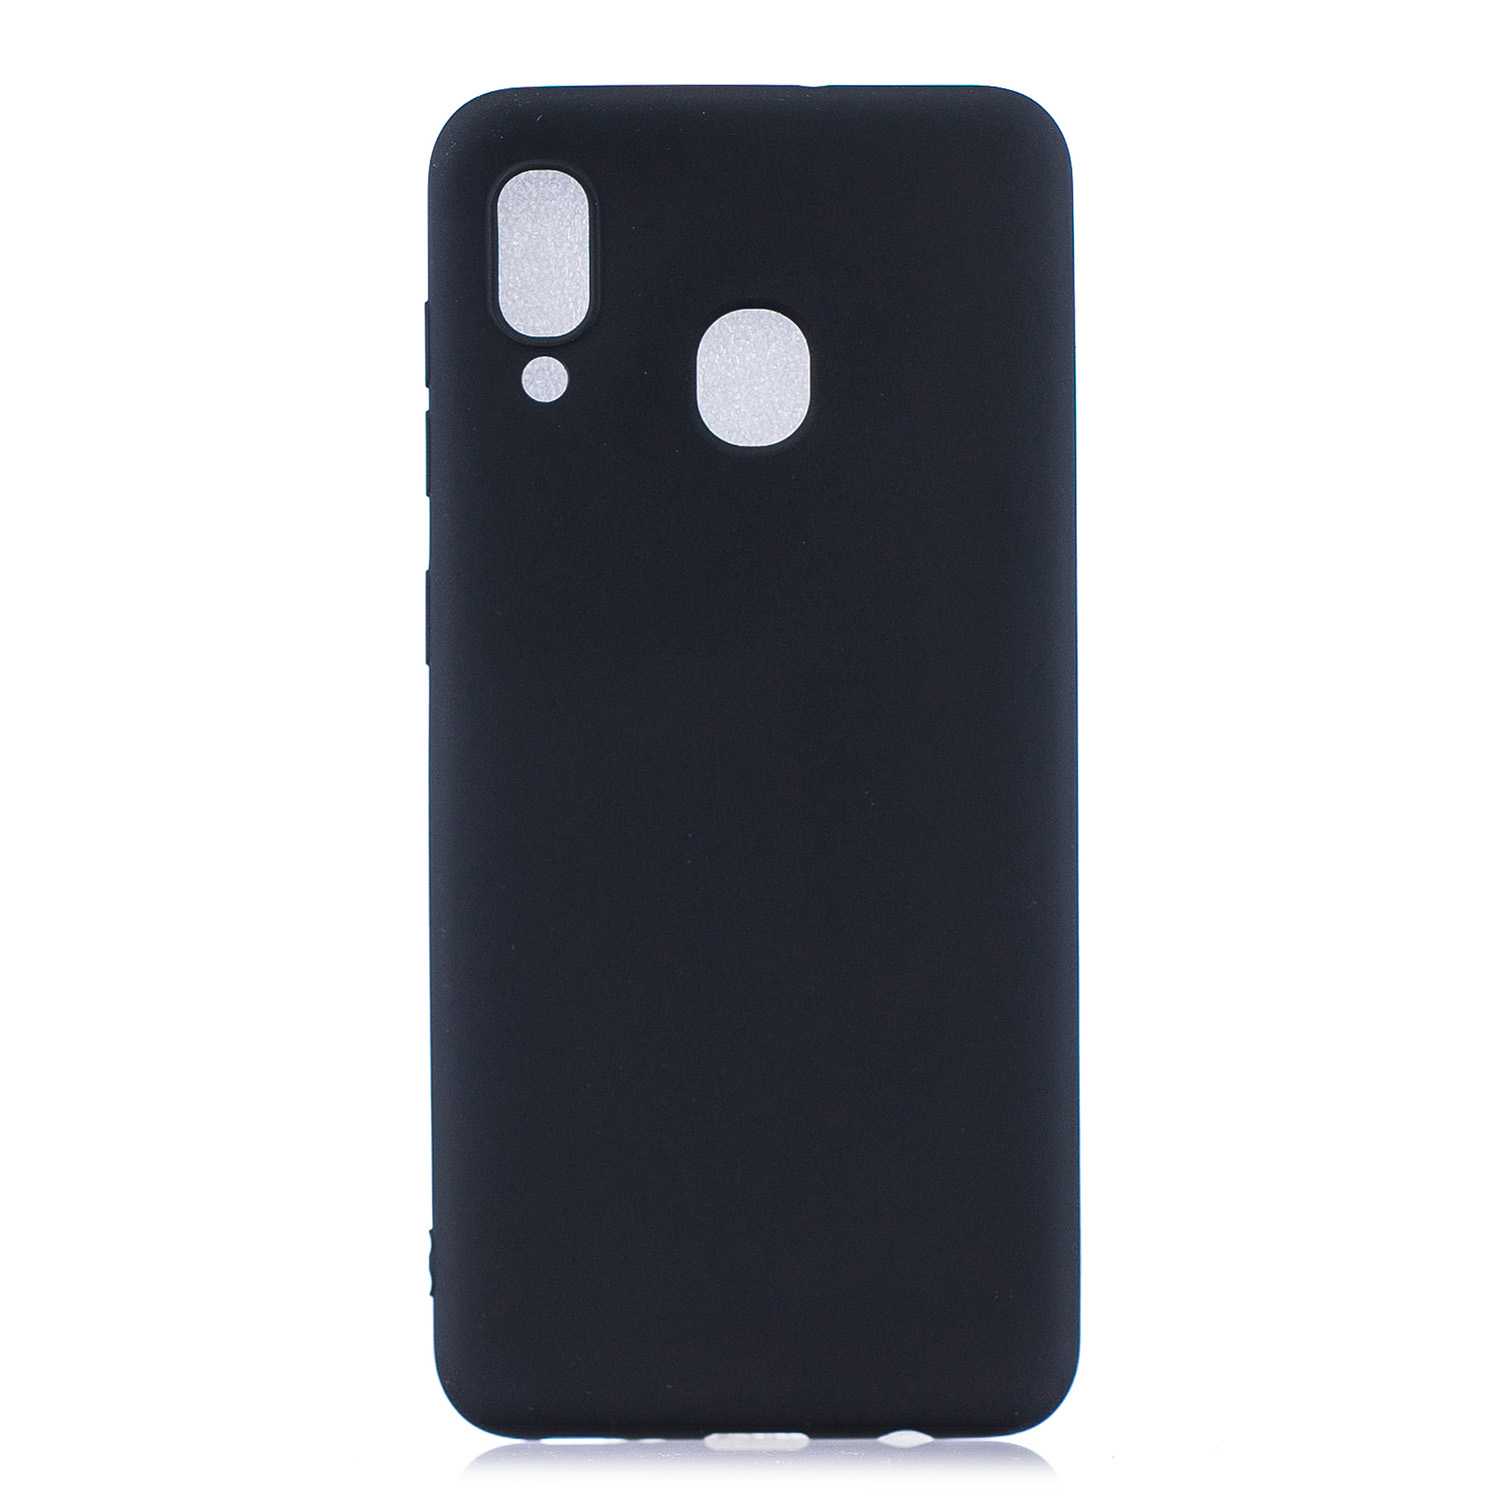 For HUAWEI Y9 2019 Lovely Candy Color Matte TPU Anti-scratch Non-slip Protective Cover Back Case black